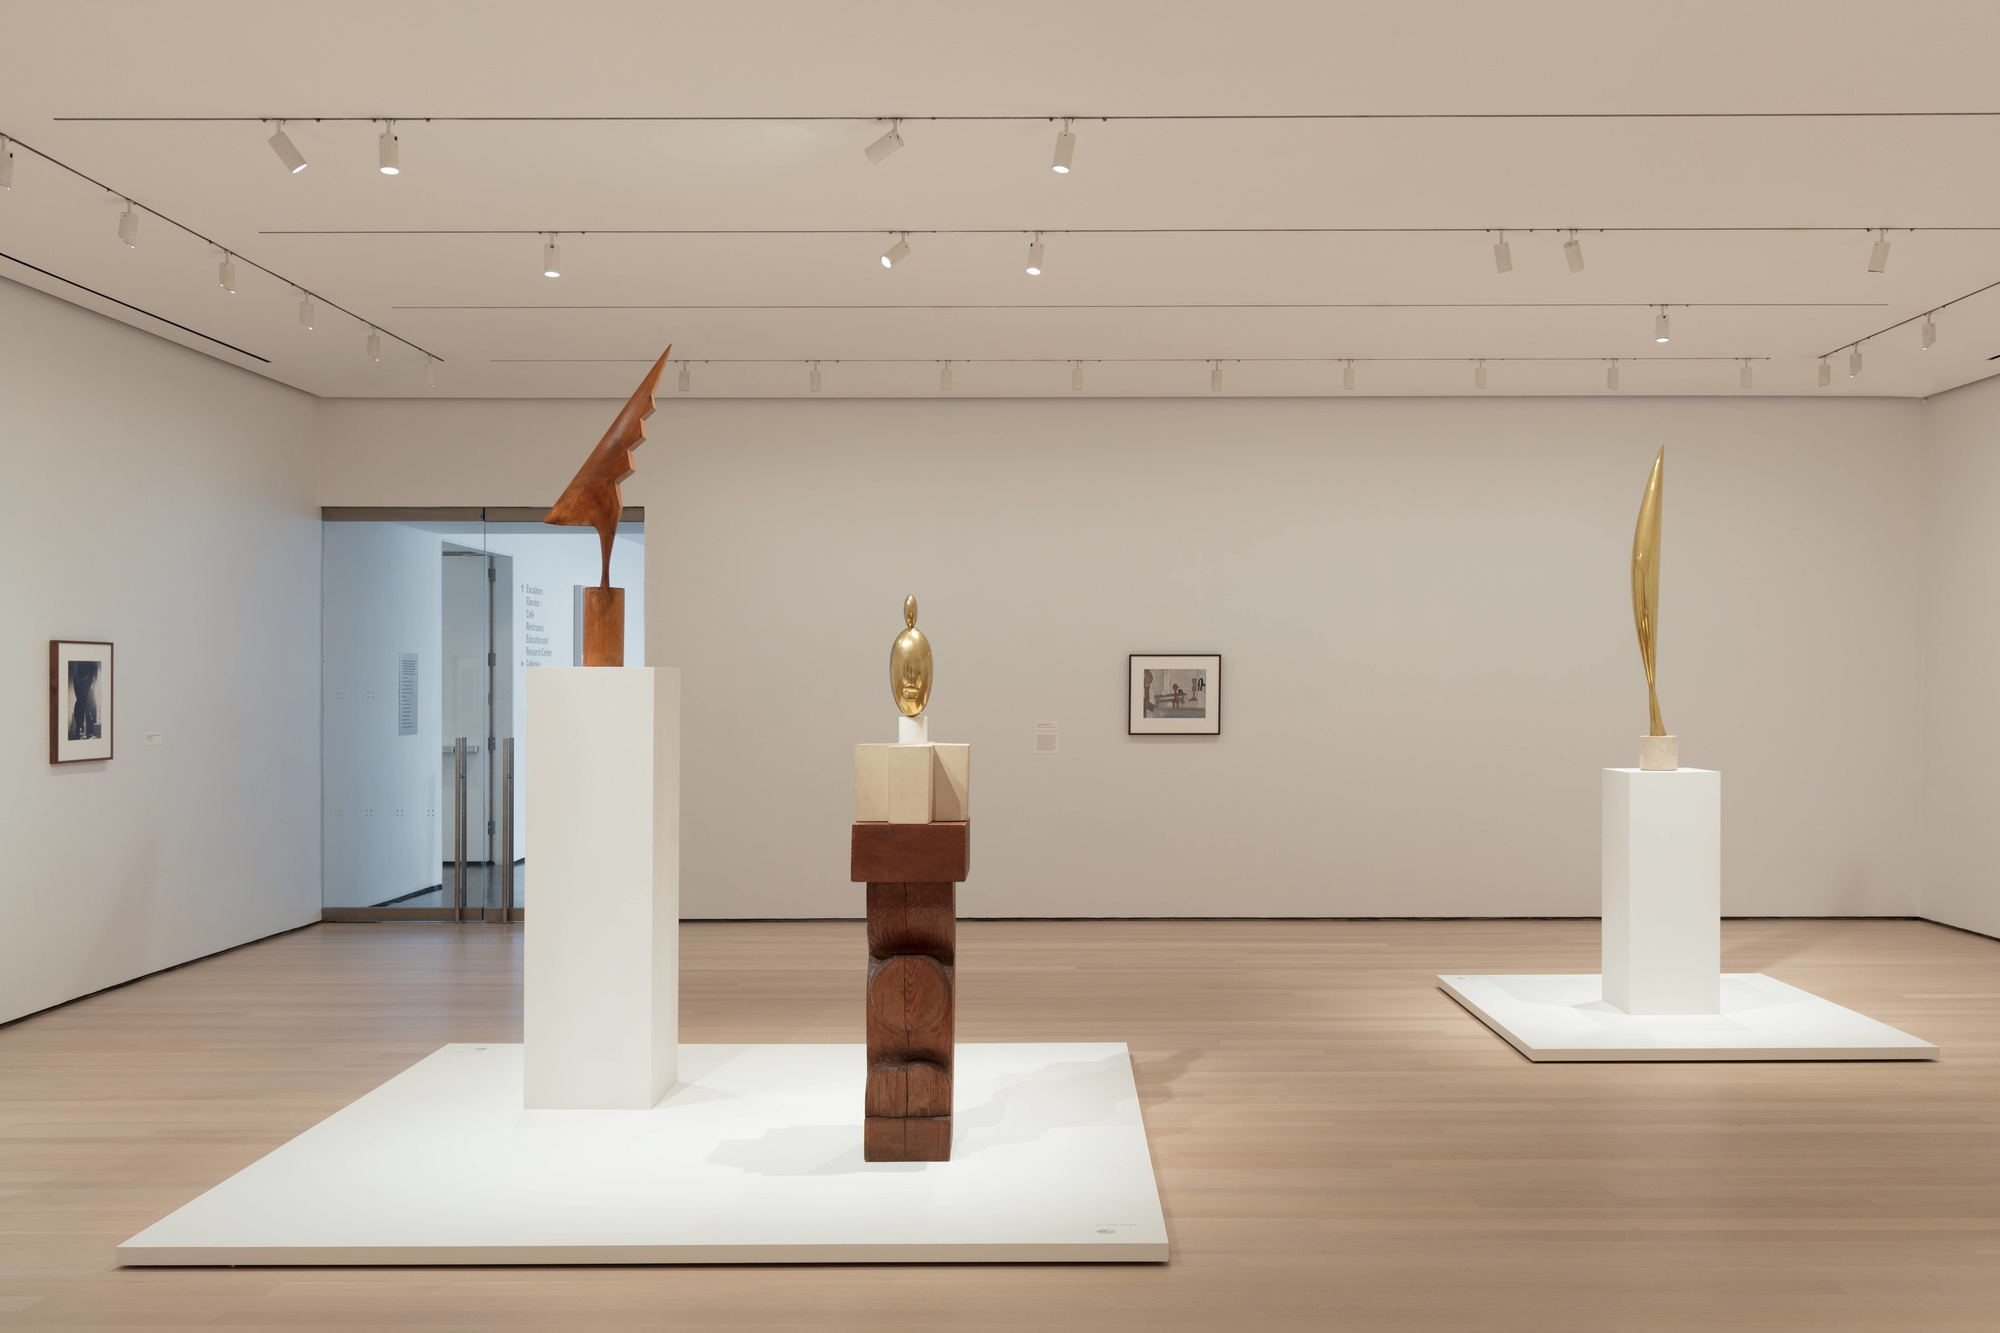 Installation view of the exhibition Constantin Brancusi Sculpture, The Museum of Modern Art, July 22, 2018–June 15, 2019. Photo: Denis Doorly. © 2019 The Museum of Modern Art, New York